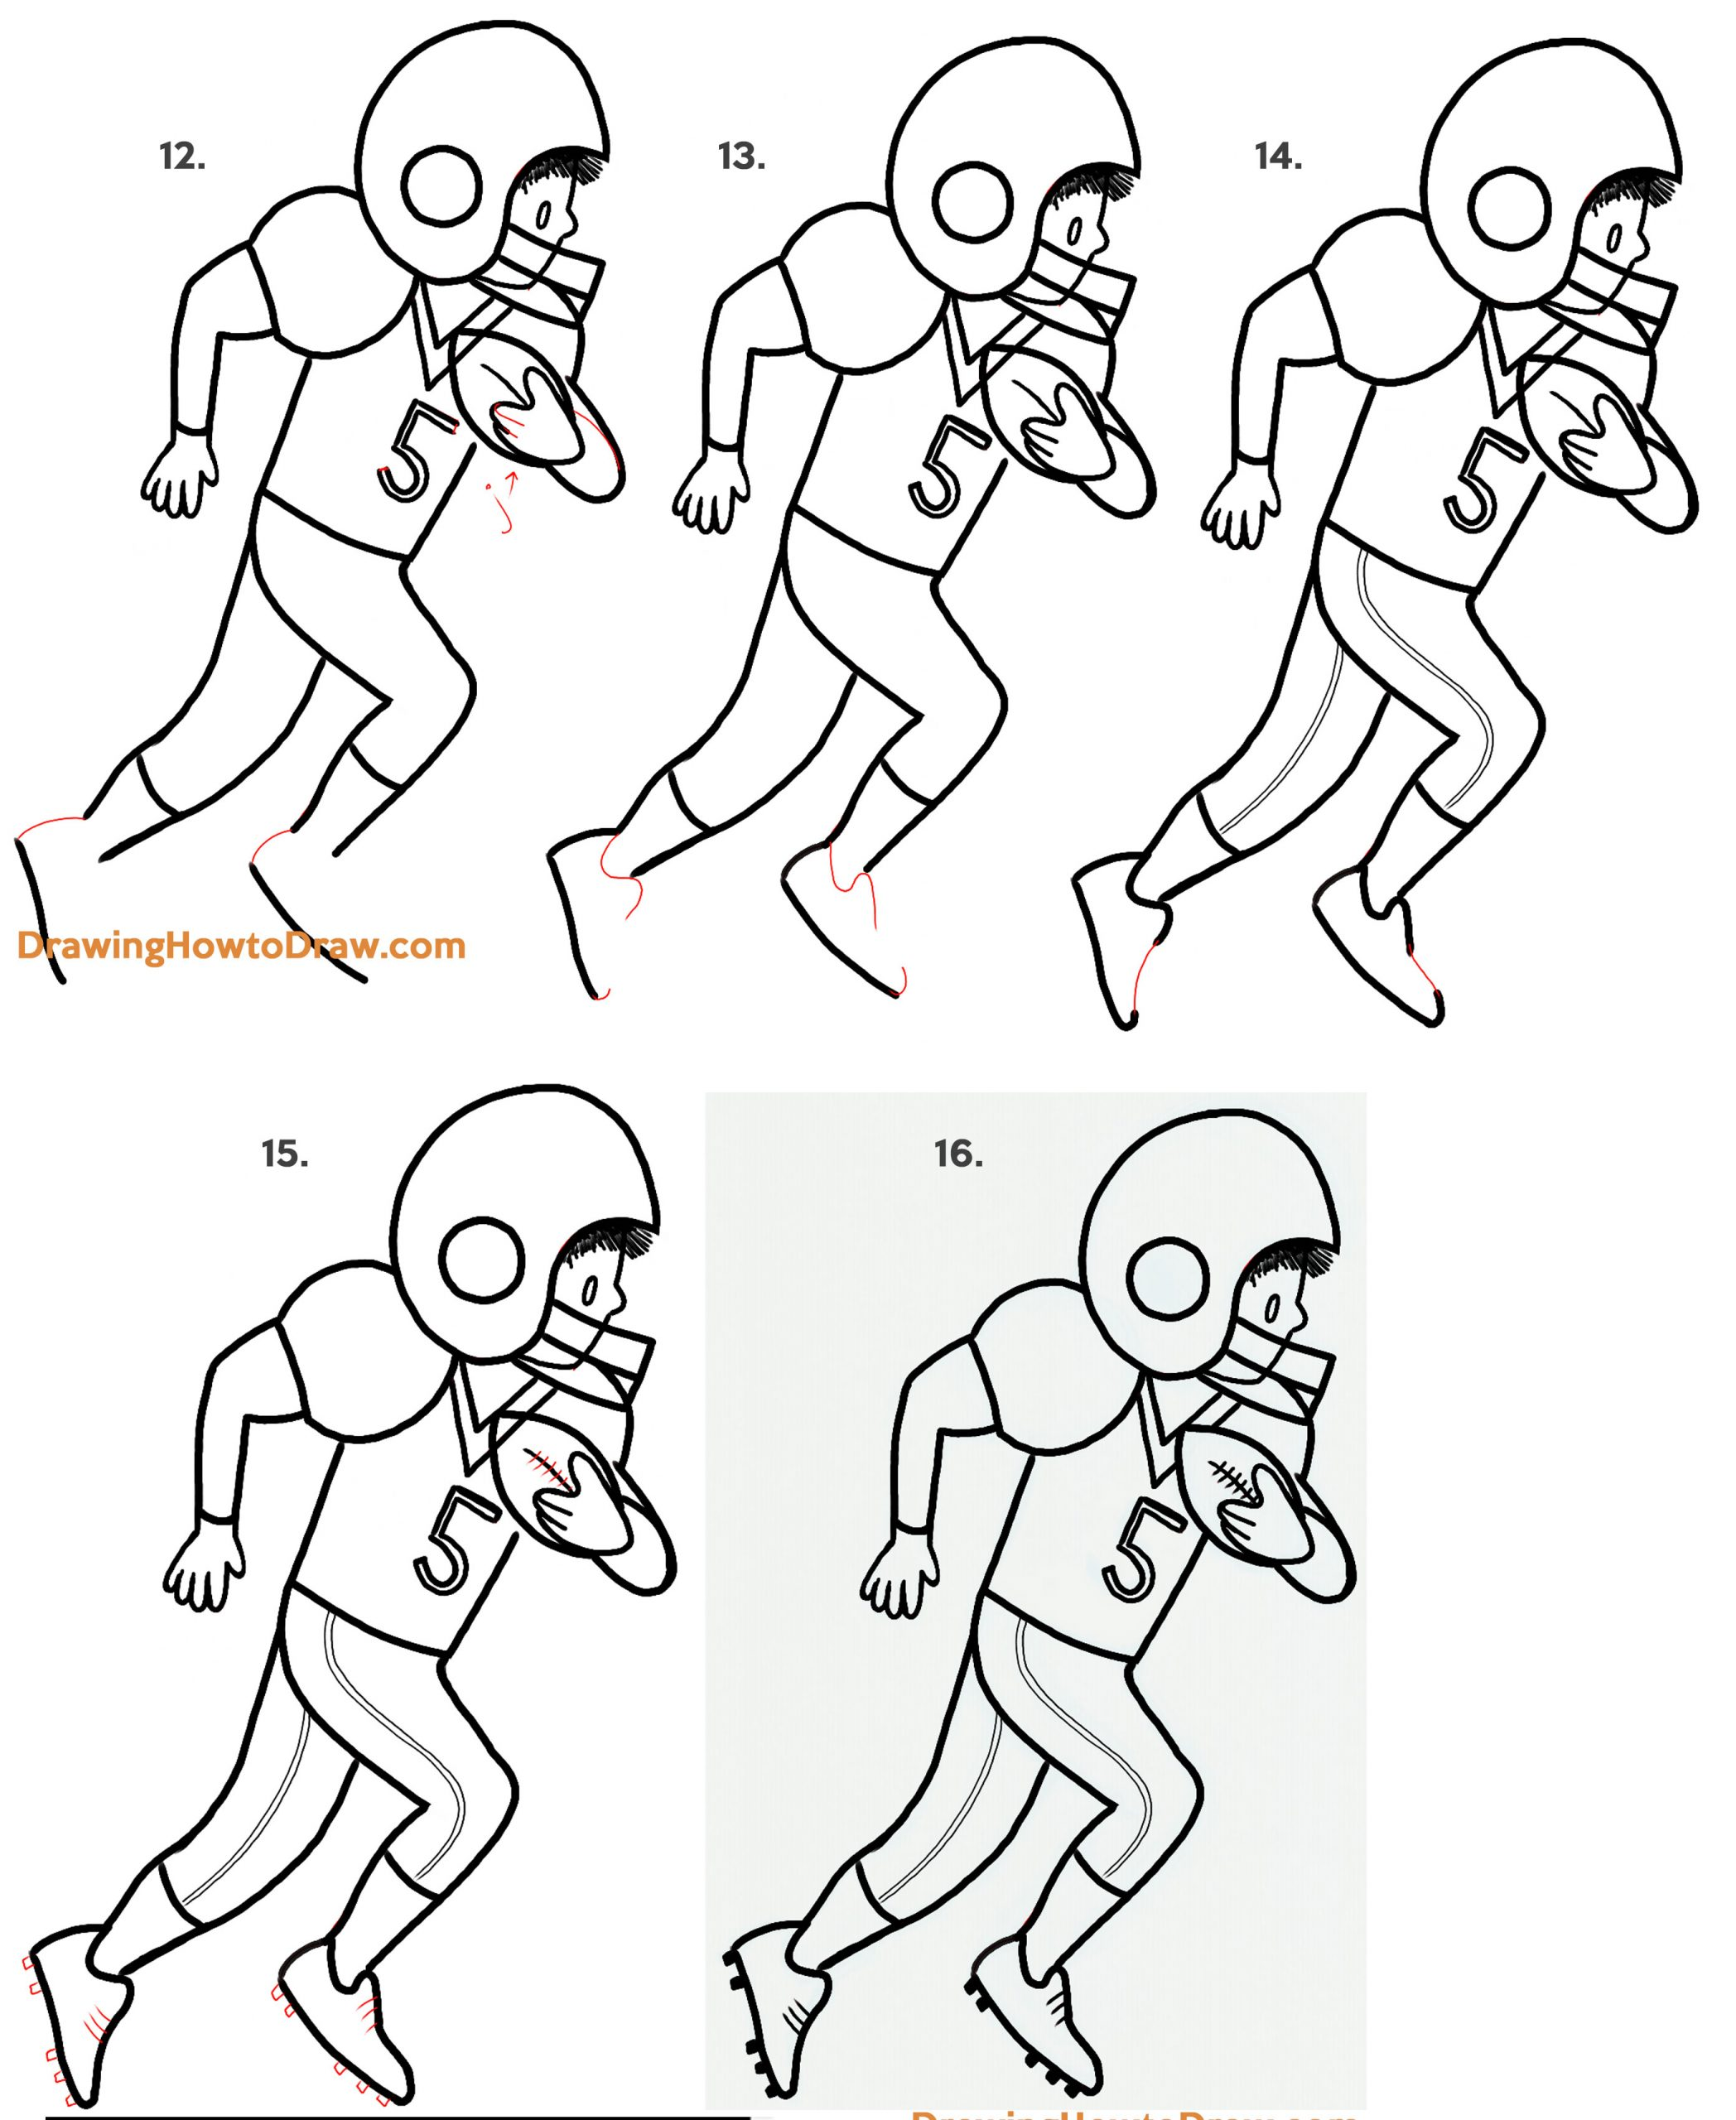 How to Draw a Cartoon American Football Receiver - Easy Step by Step Drawing Tutorial